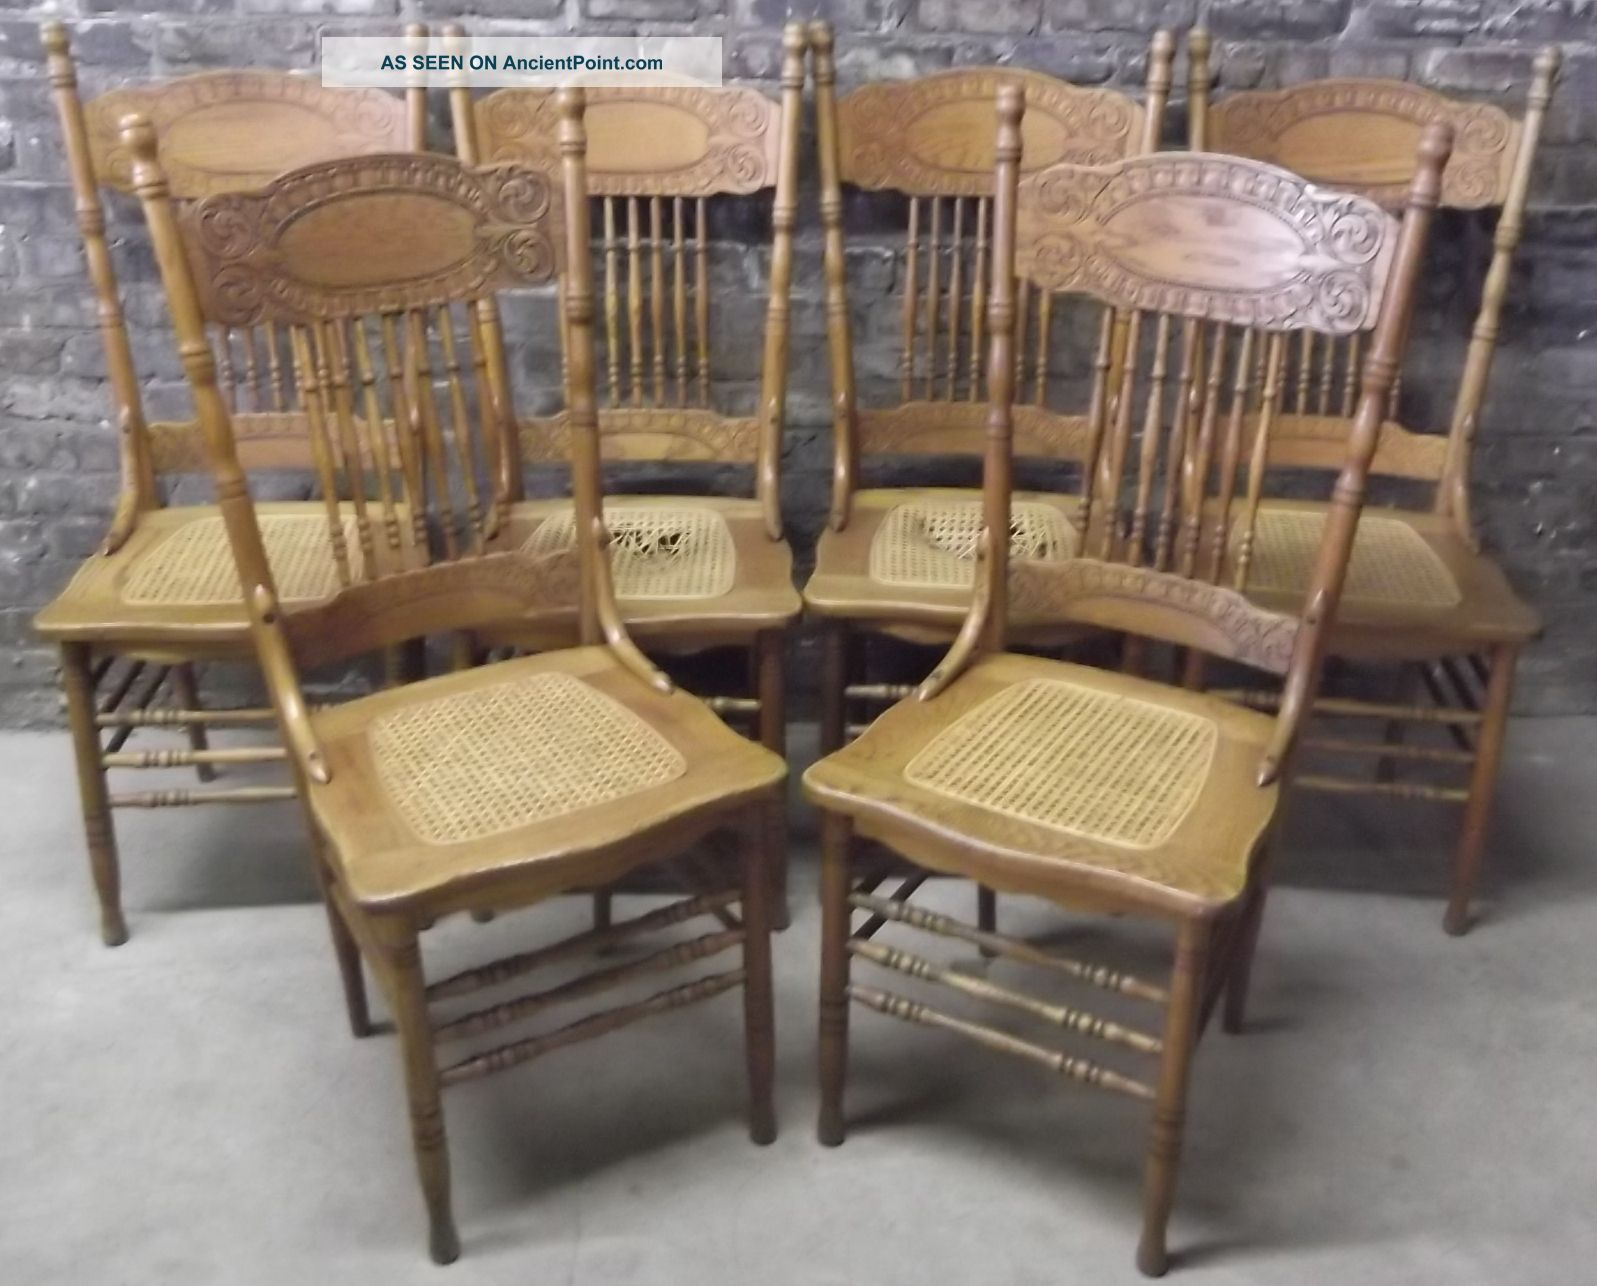 9Ae972199B552E81C418007038Fecfbf Custom Antique Dining Room Table And Chairs Inspiration Design